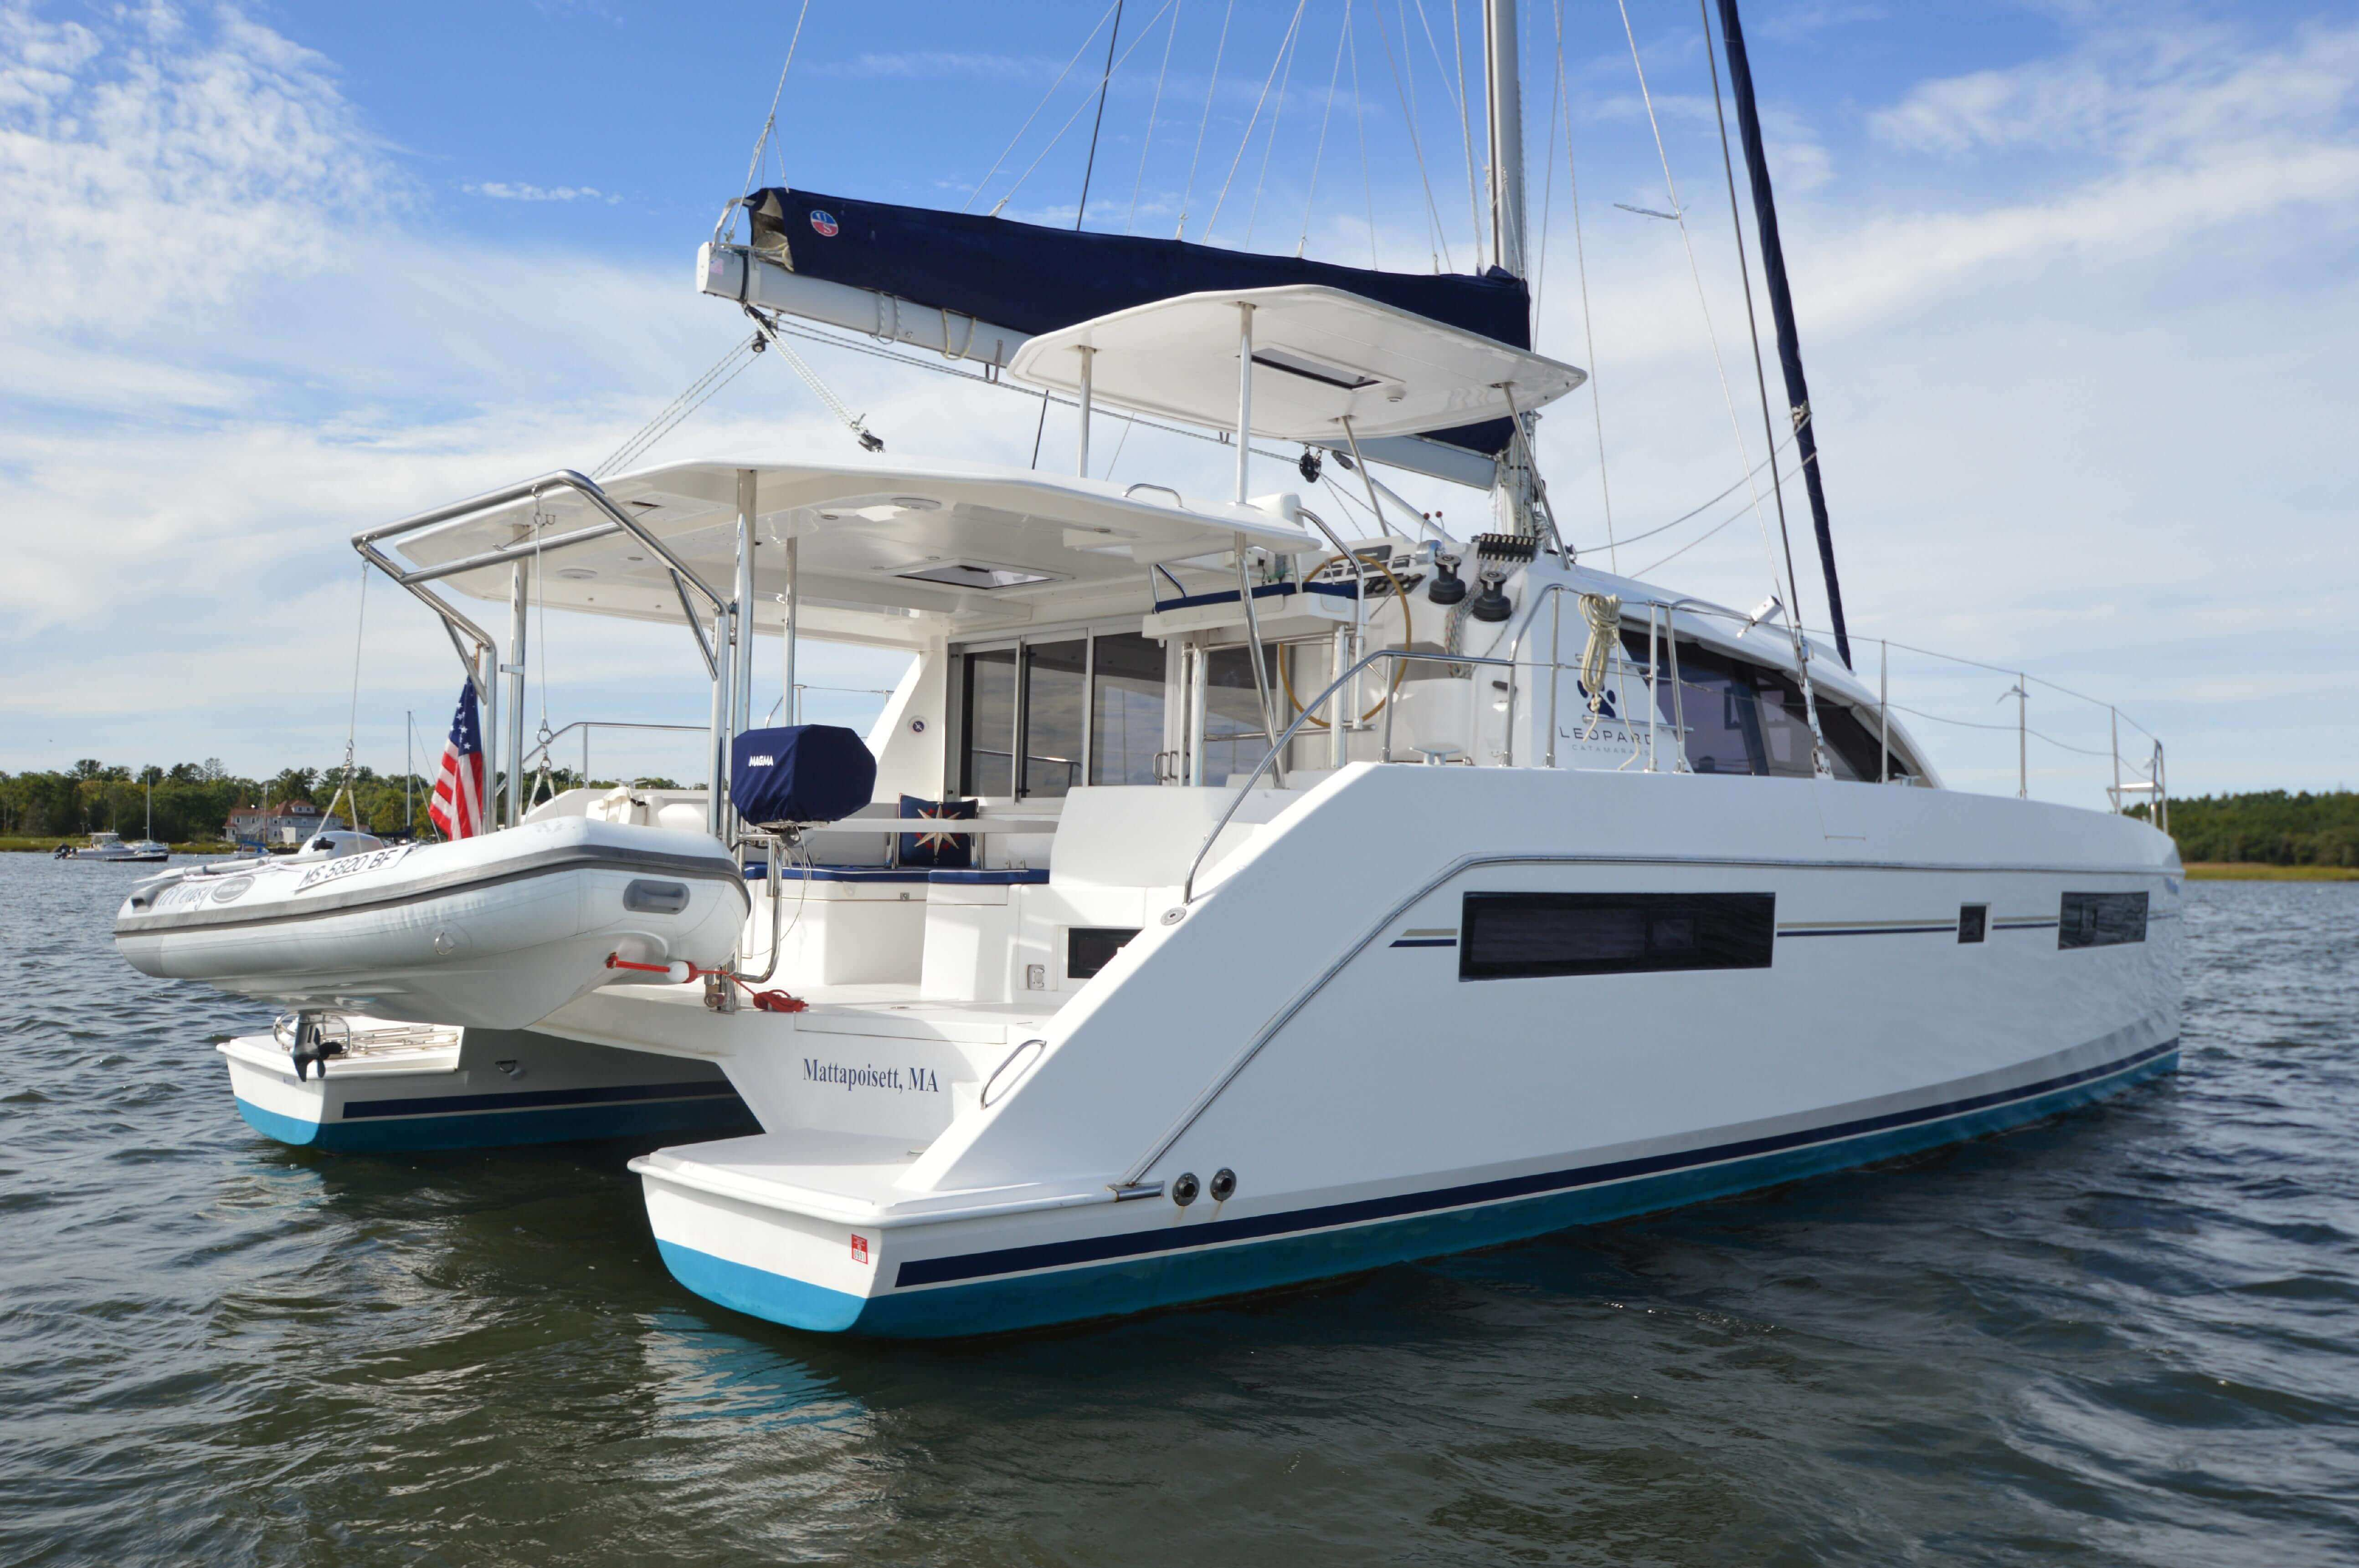 Used Sail Catamaran for Sale 2015 Leopard 40 Boat Highlights